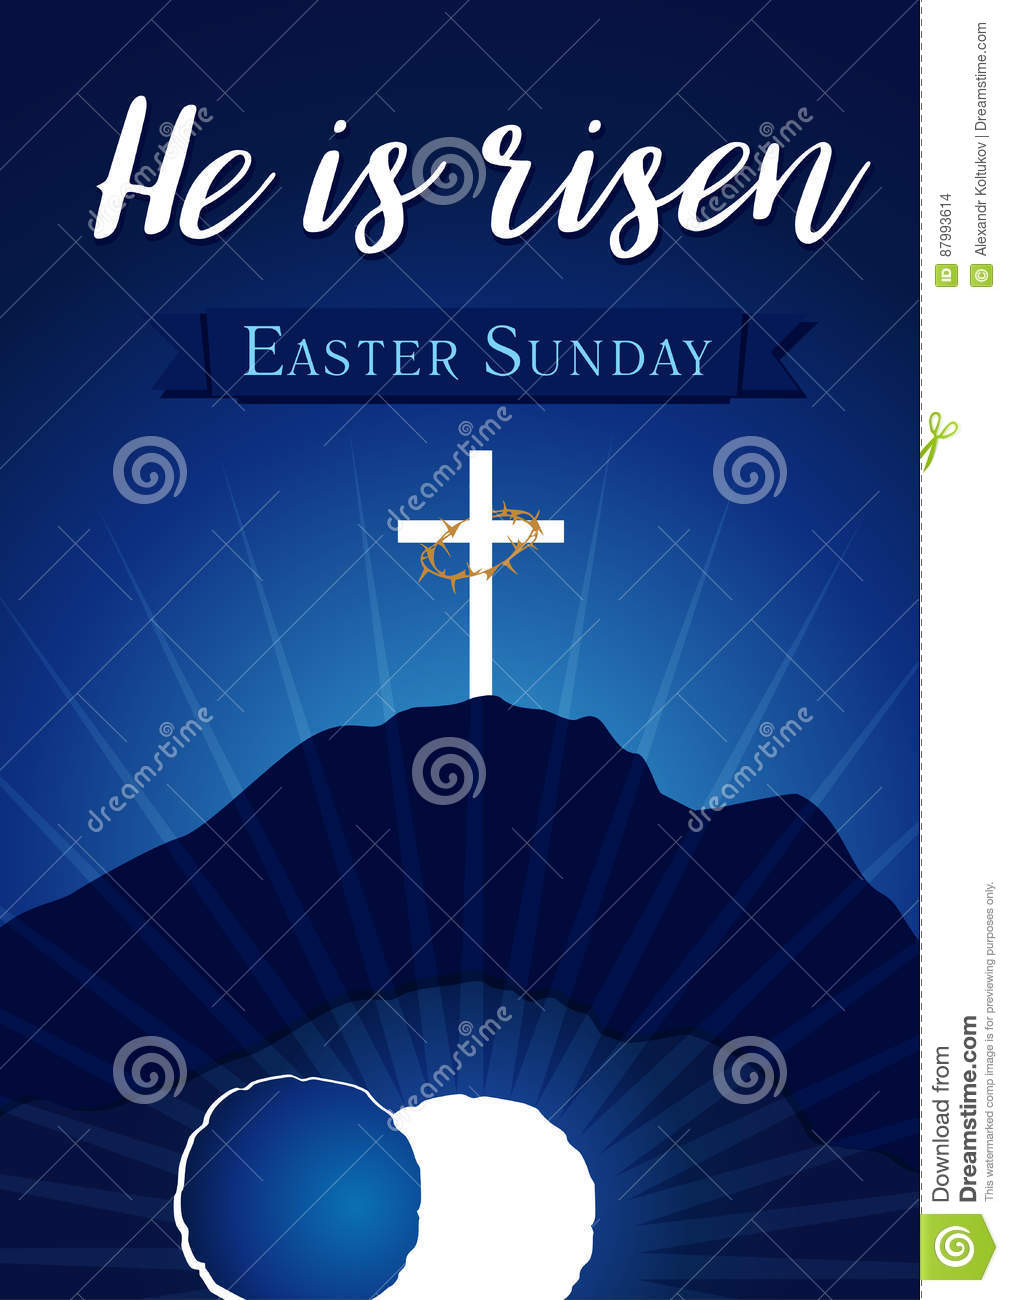 With Holy Christs Sunday, with Great Easter, dear readers 11